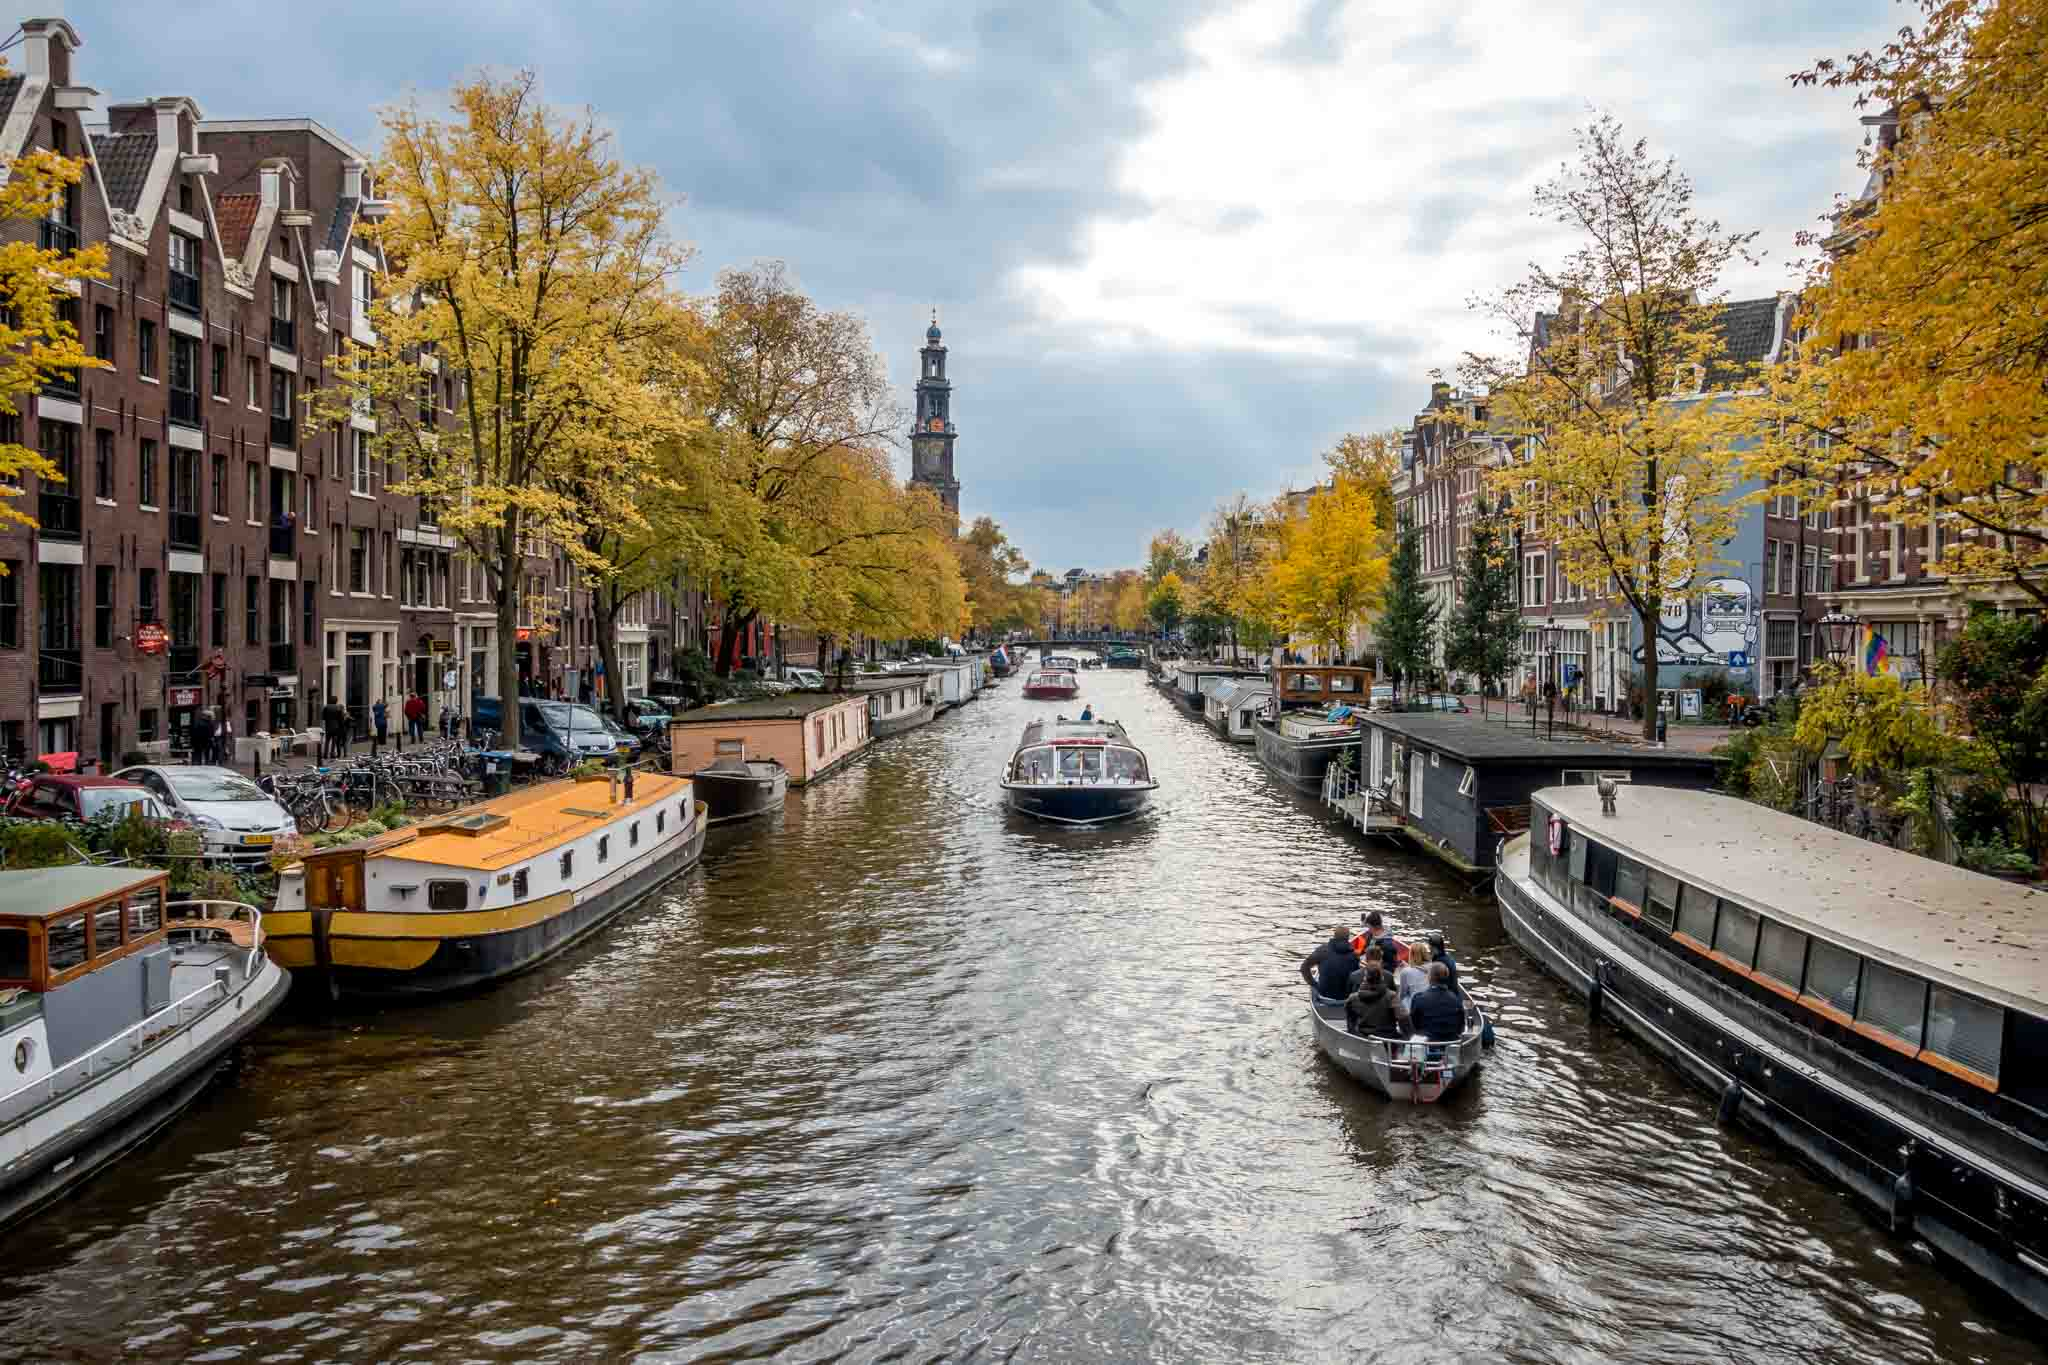 Boats in a canal in Amsterdam Netherlands